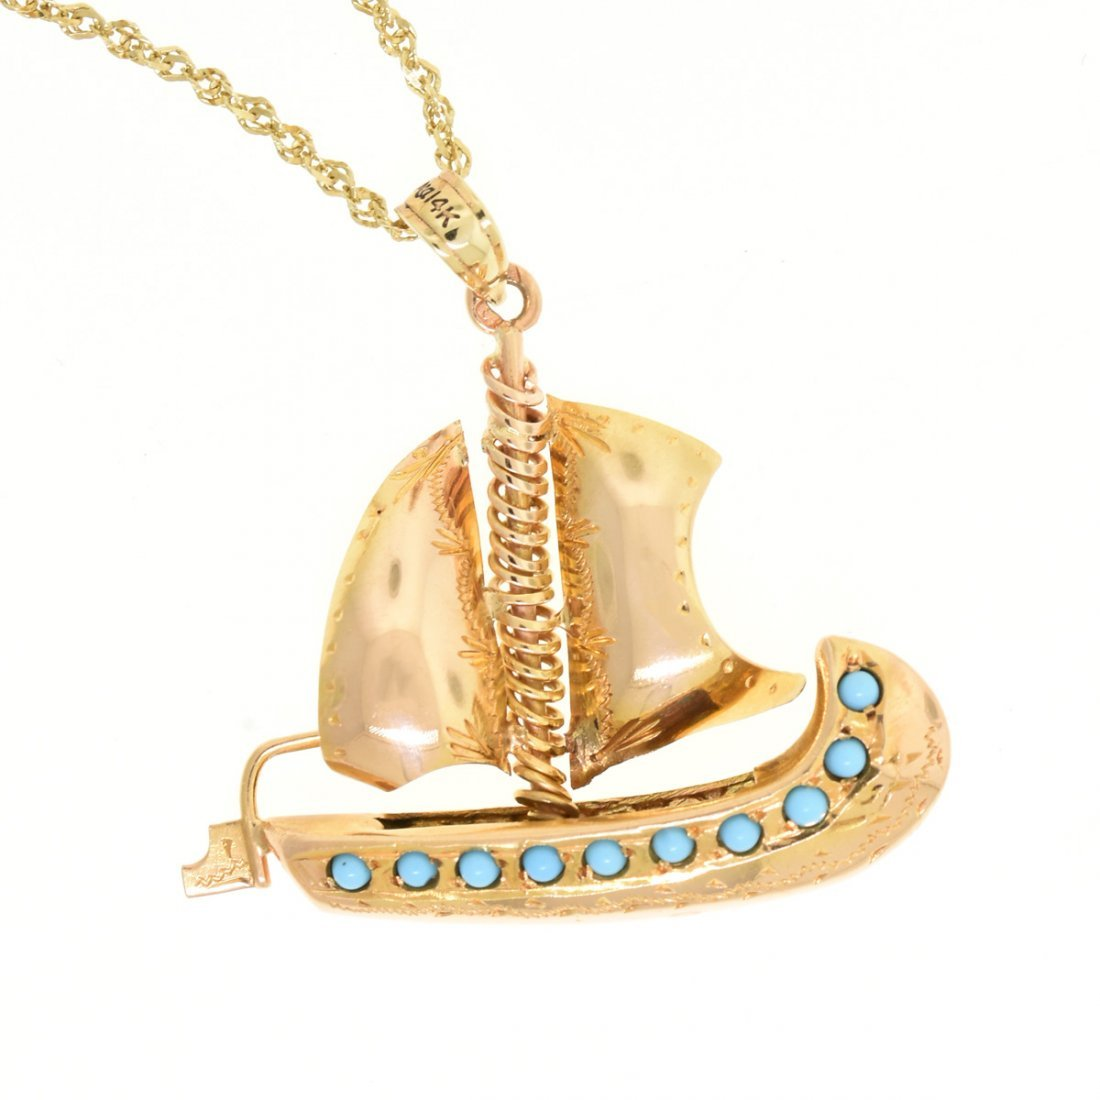 A 14K YELLOW GOLD SAILBOAT LADY'S PENDANT AND A DOS - 4